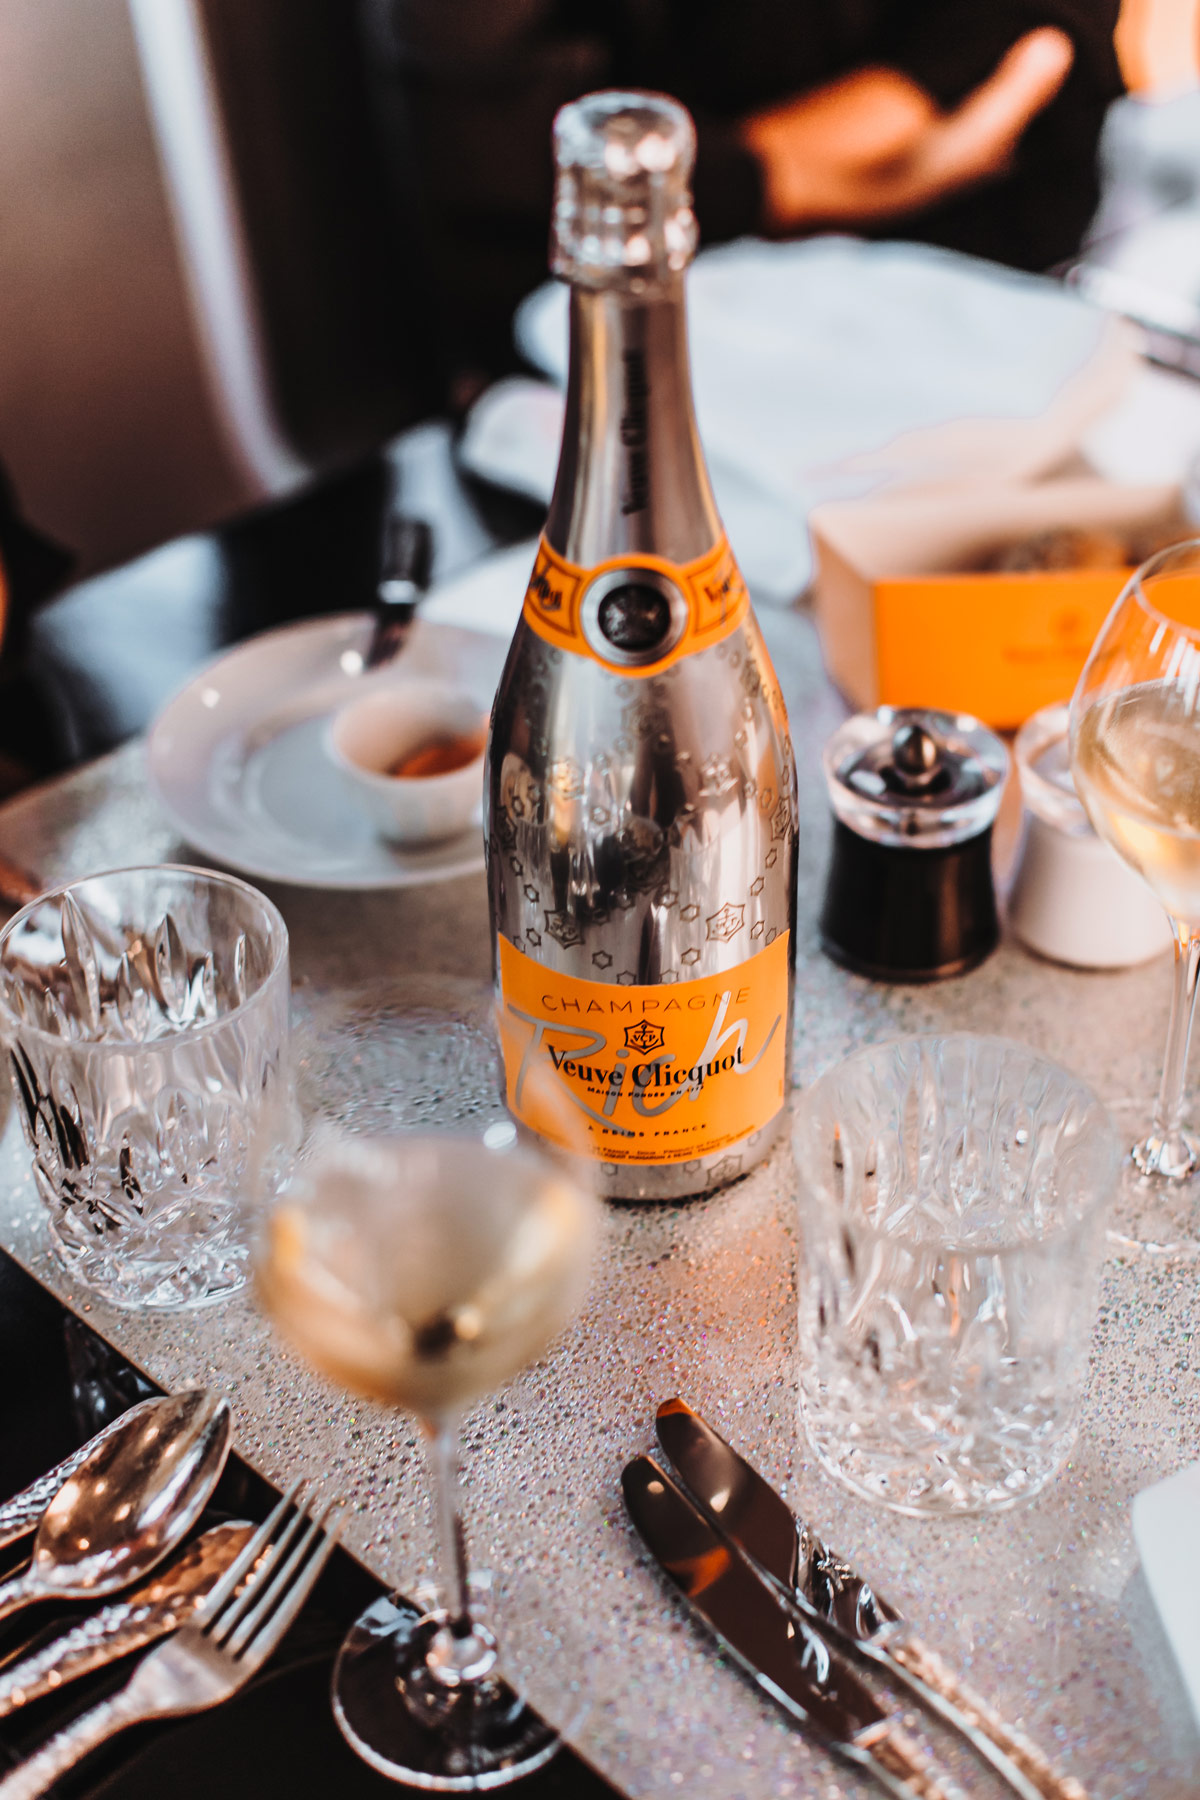 veuve clicquot party ,lebenswerteste Stadt 2017 - Les factory Femmes